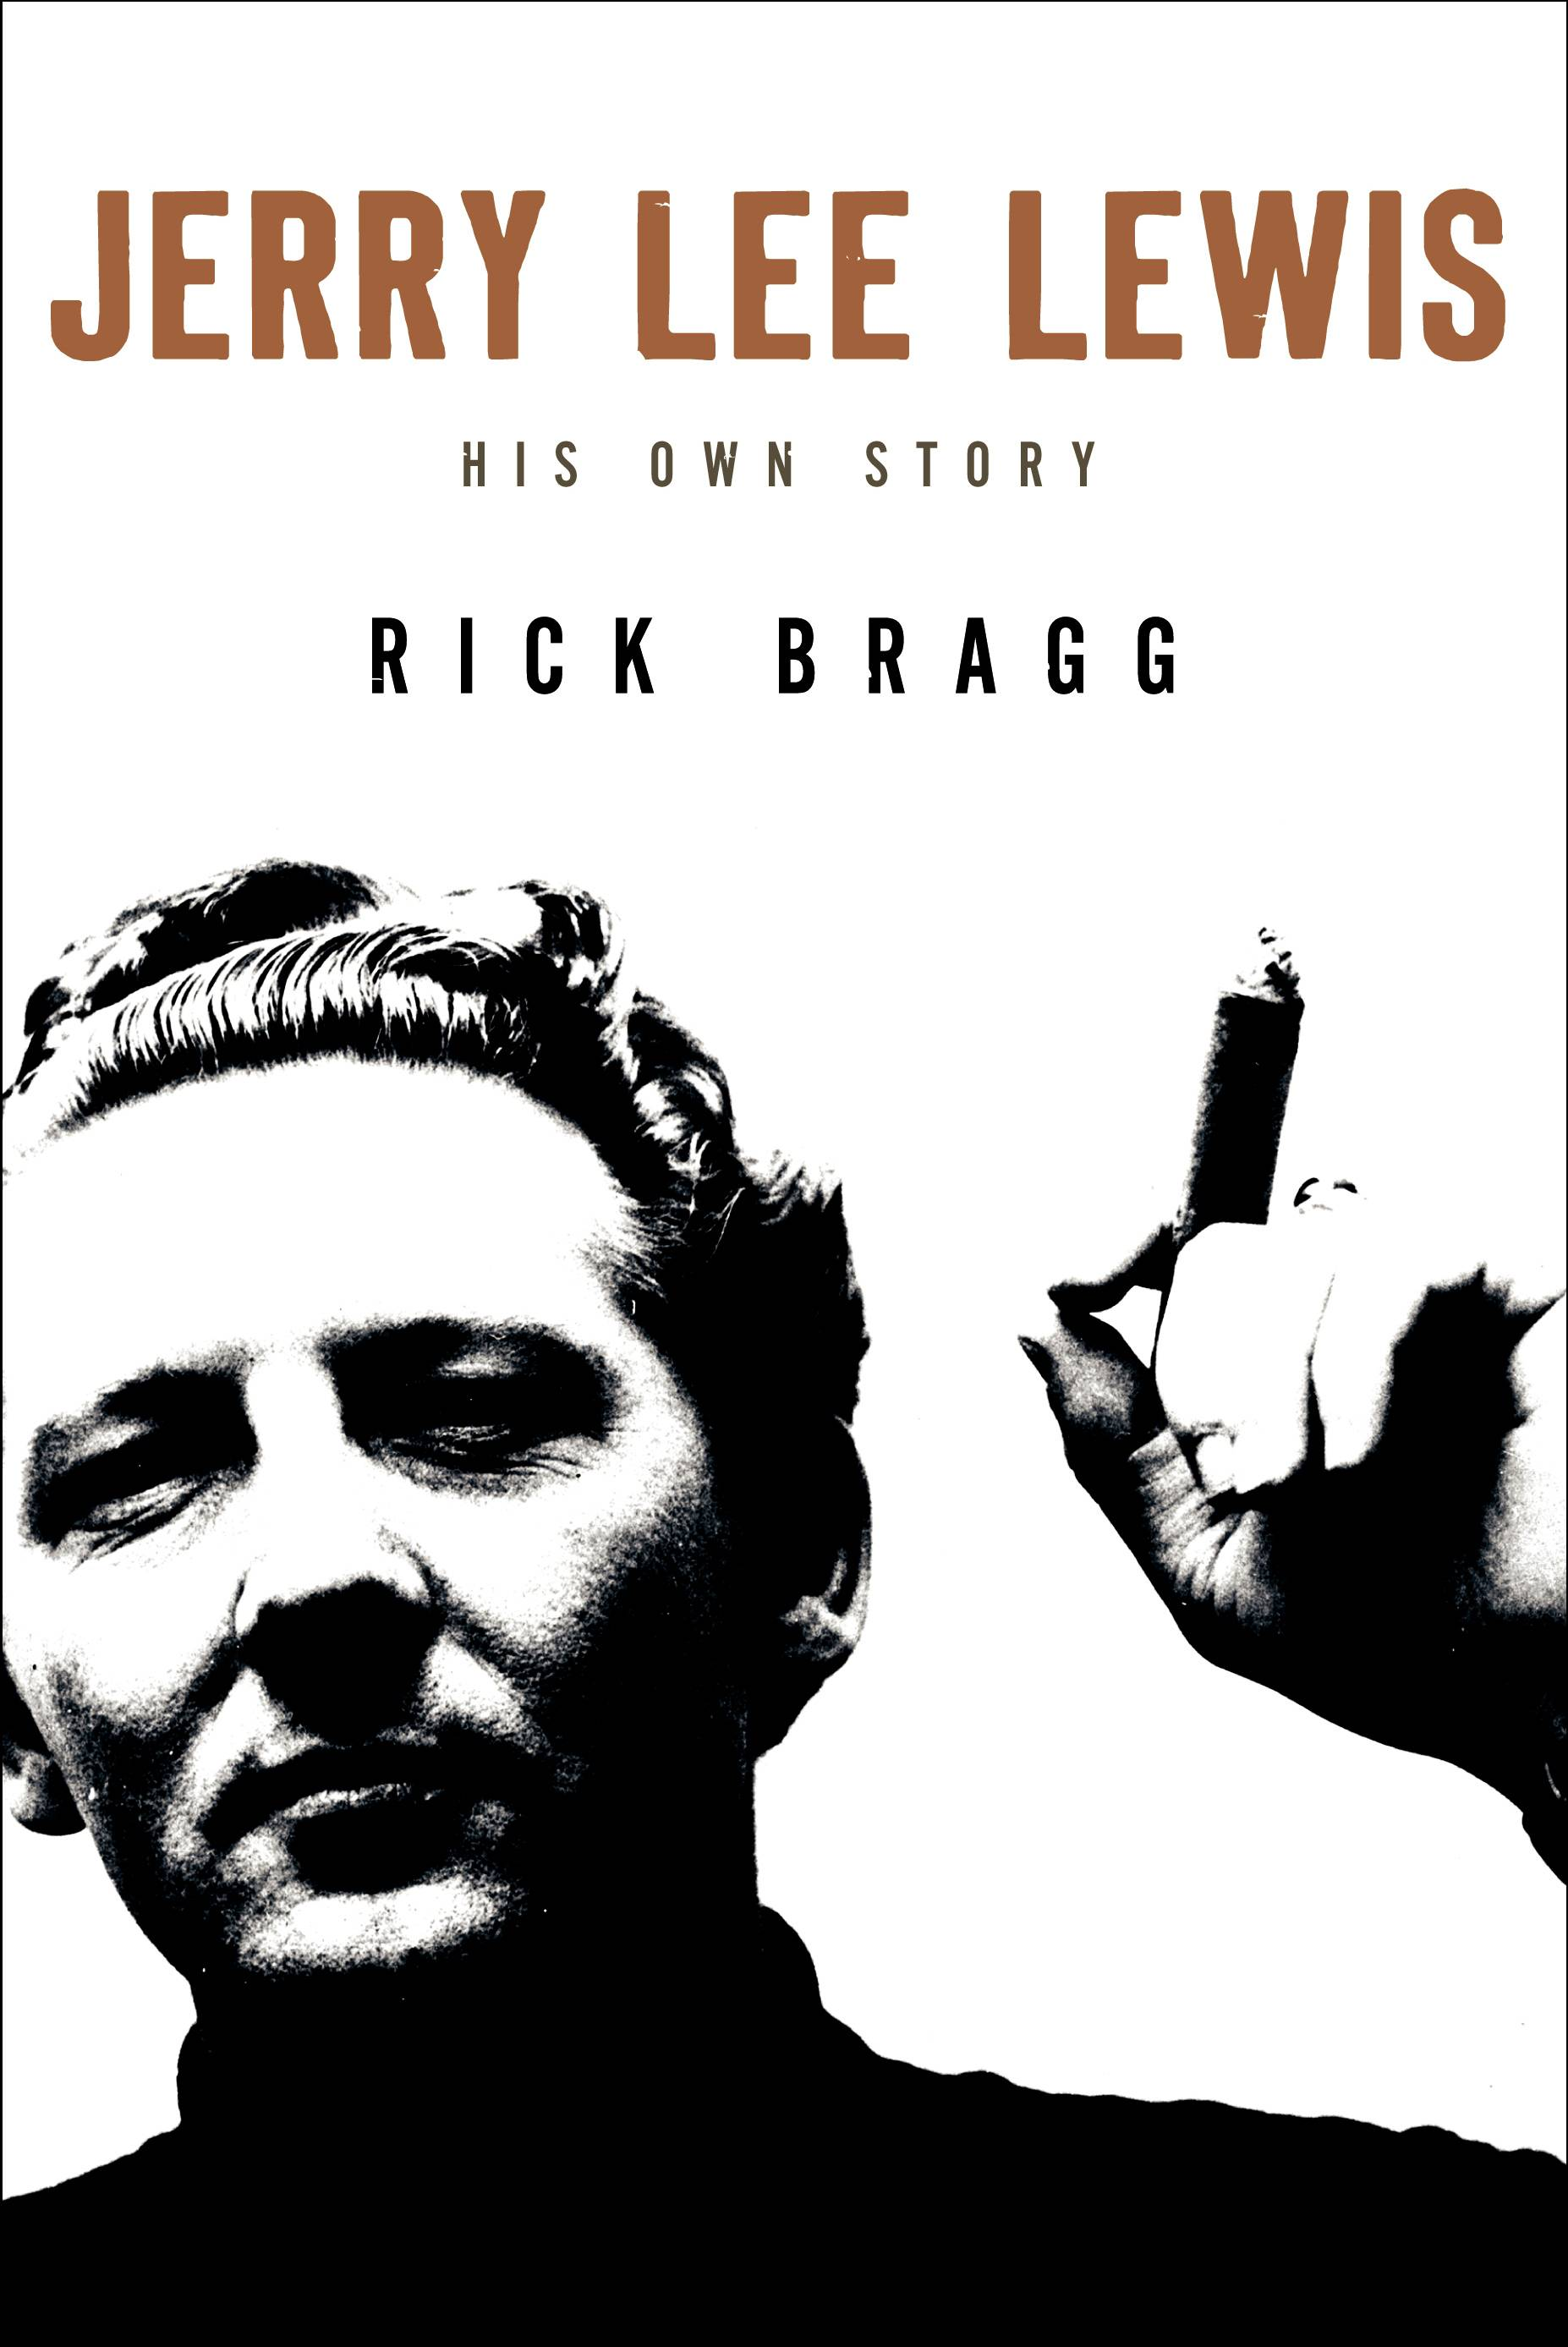 """Jerry Lee Lewis"" by Rick Bragg"